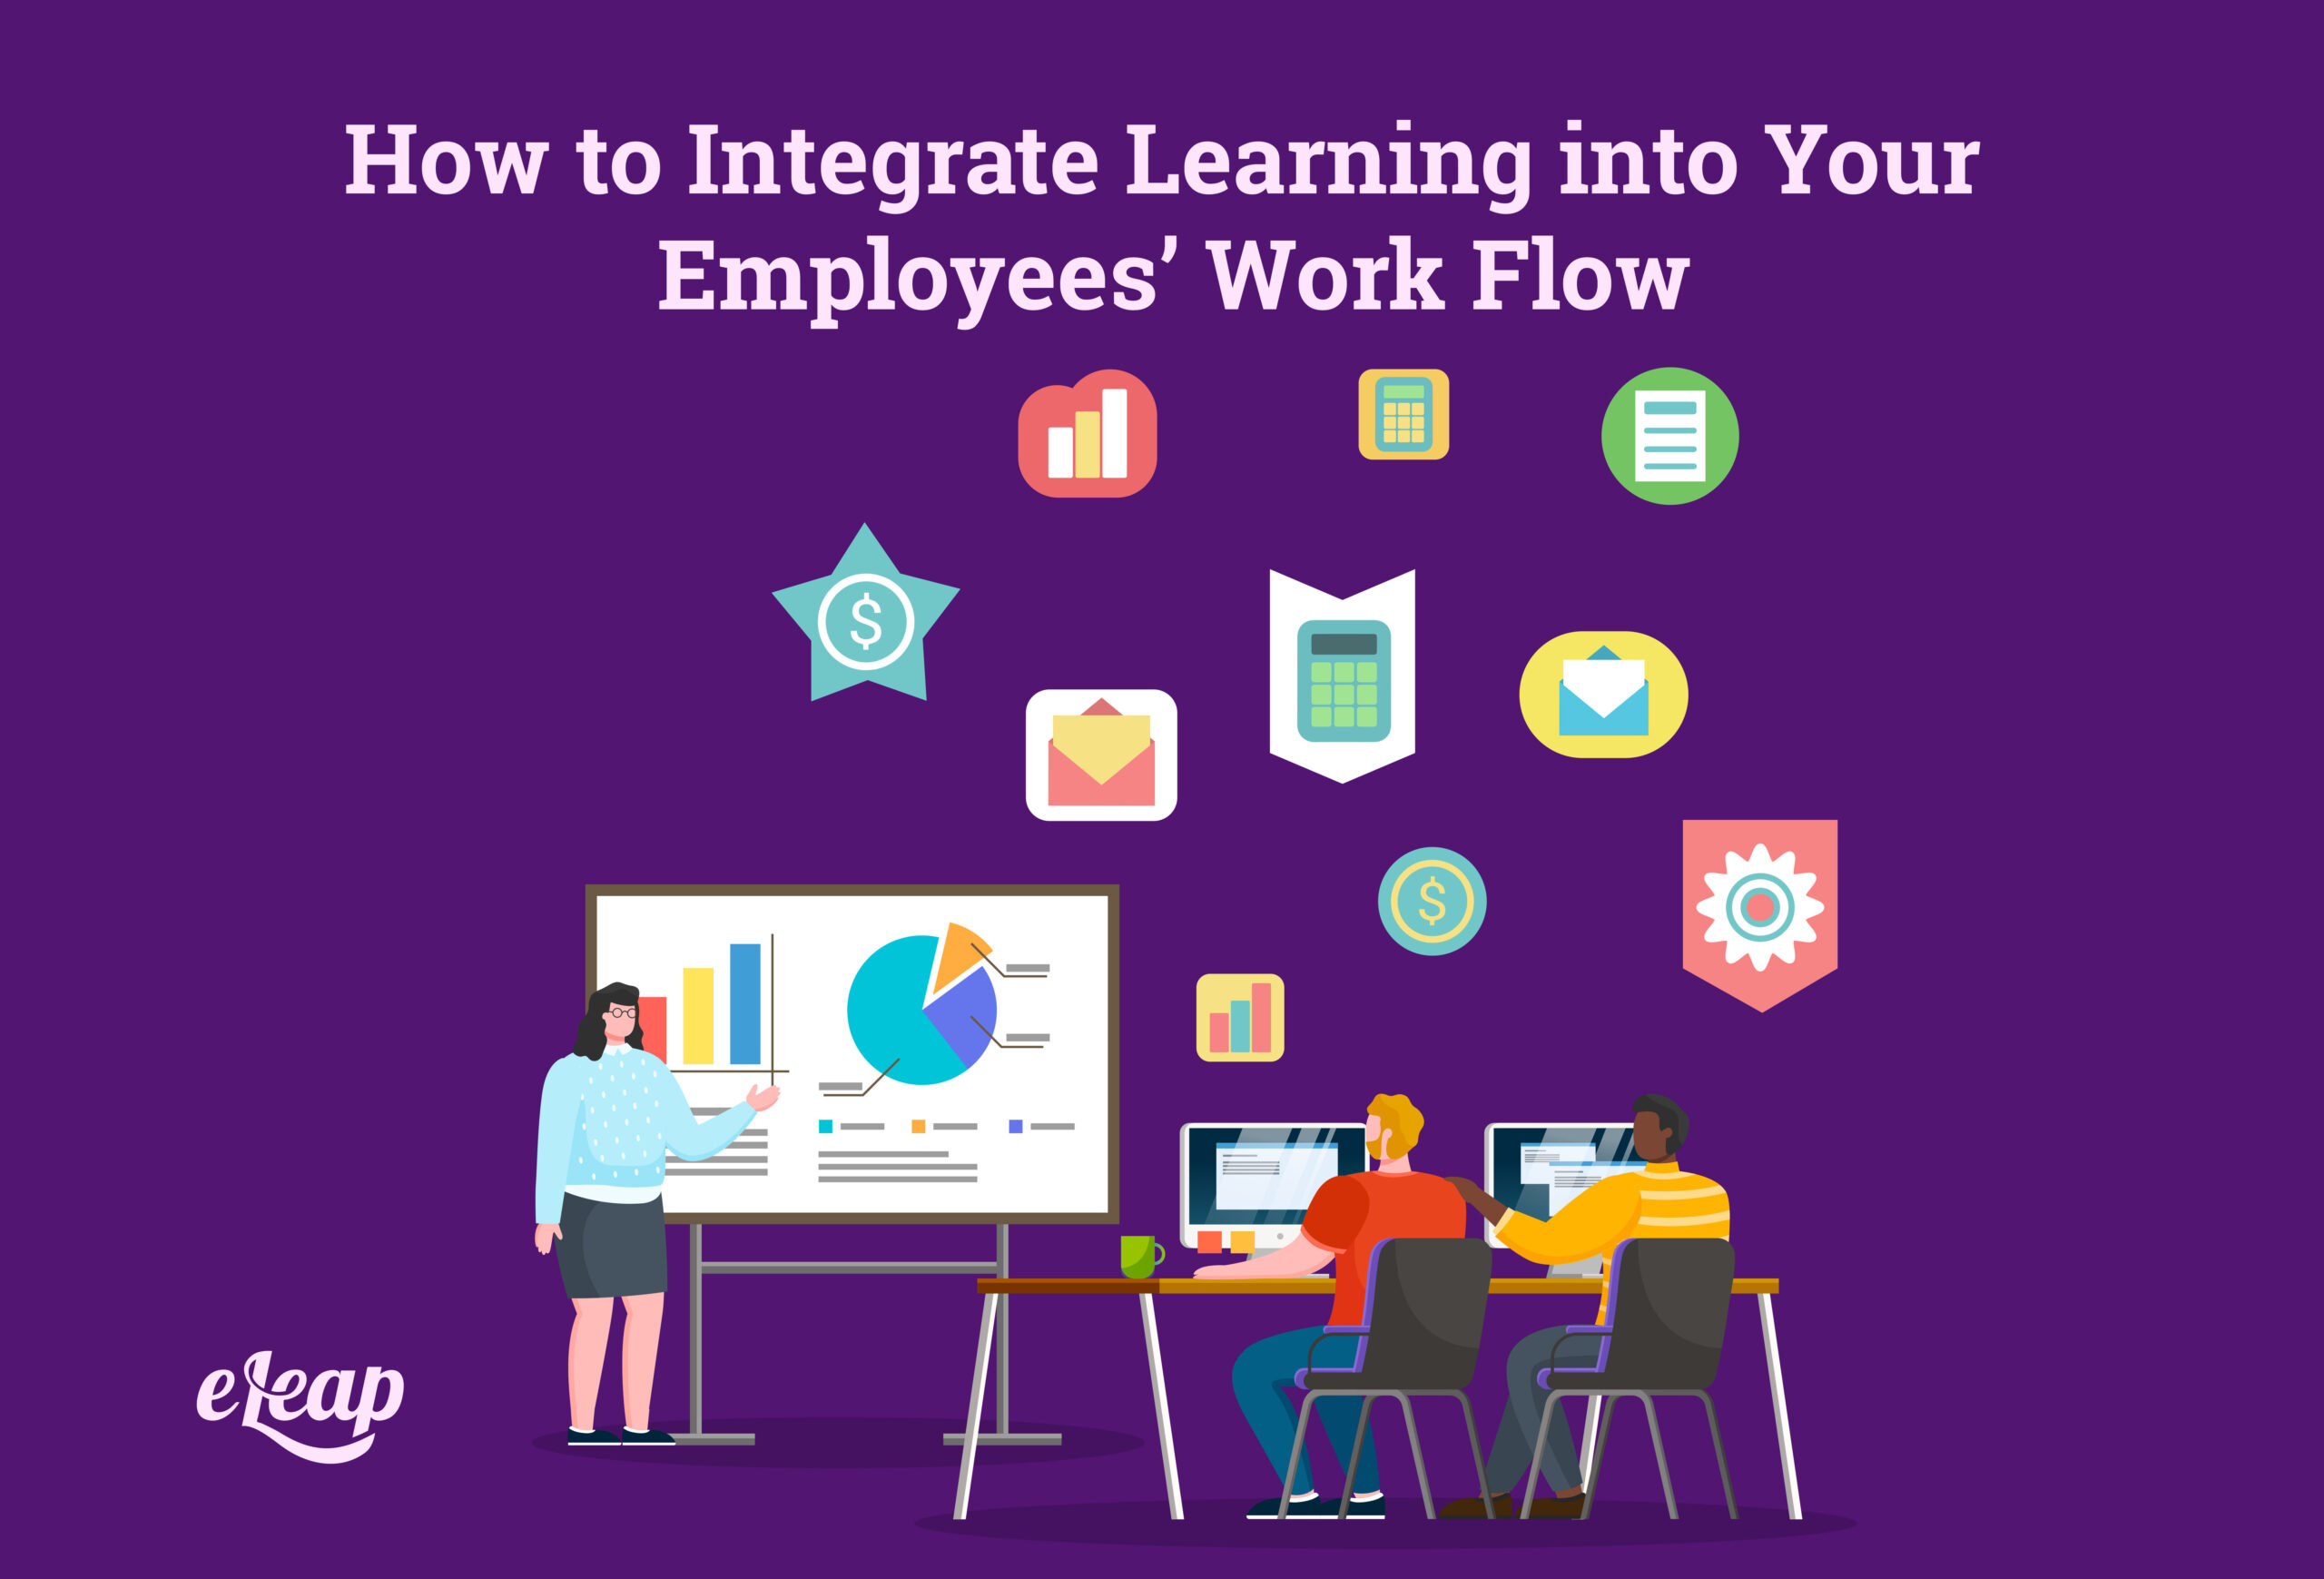 How to Integrate Learning into Your Employees' Work Flow